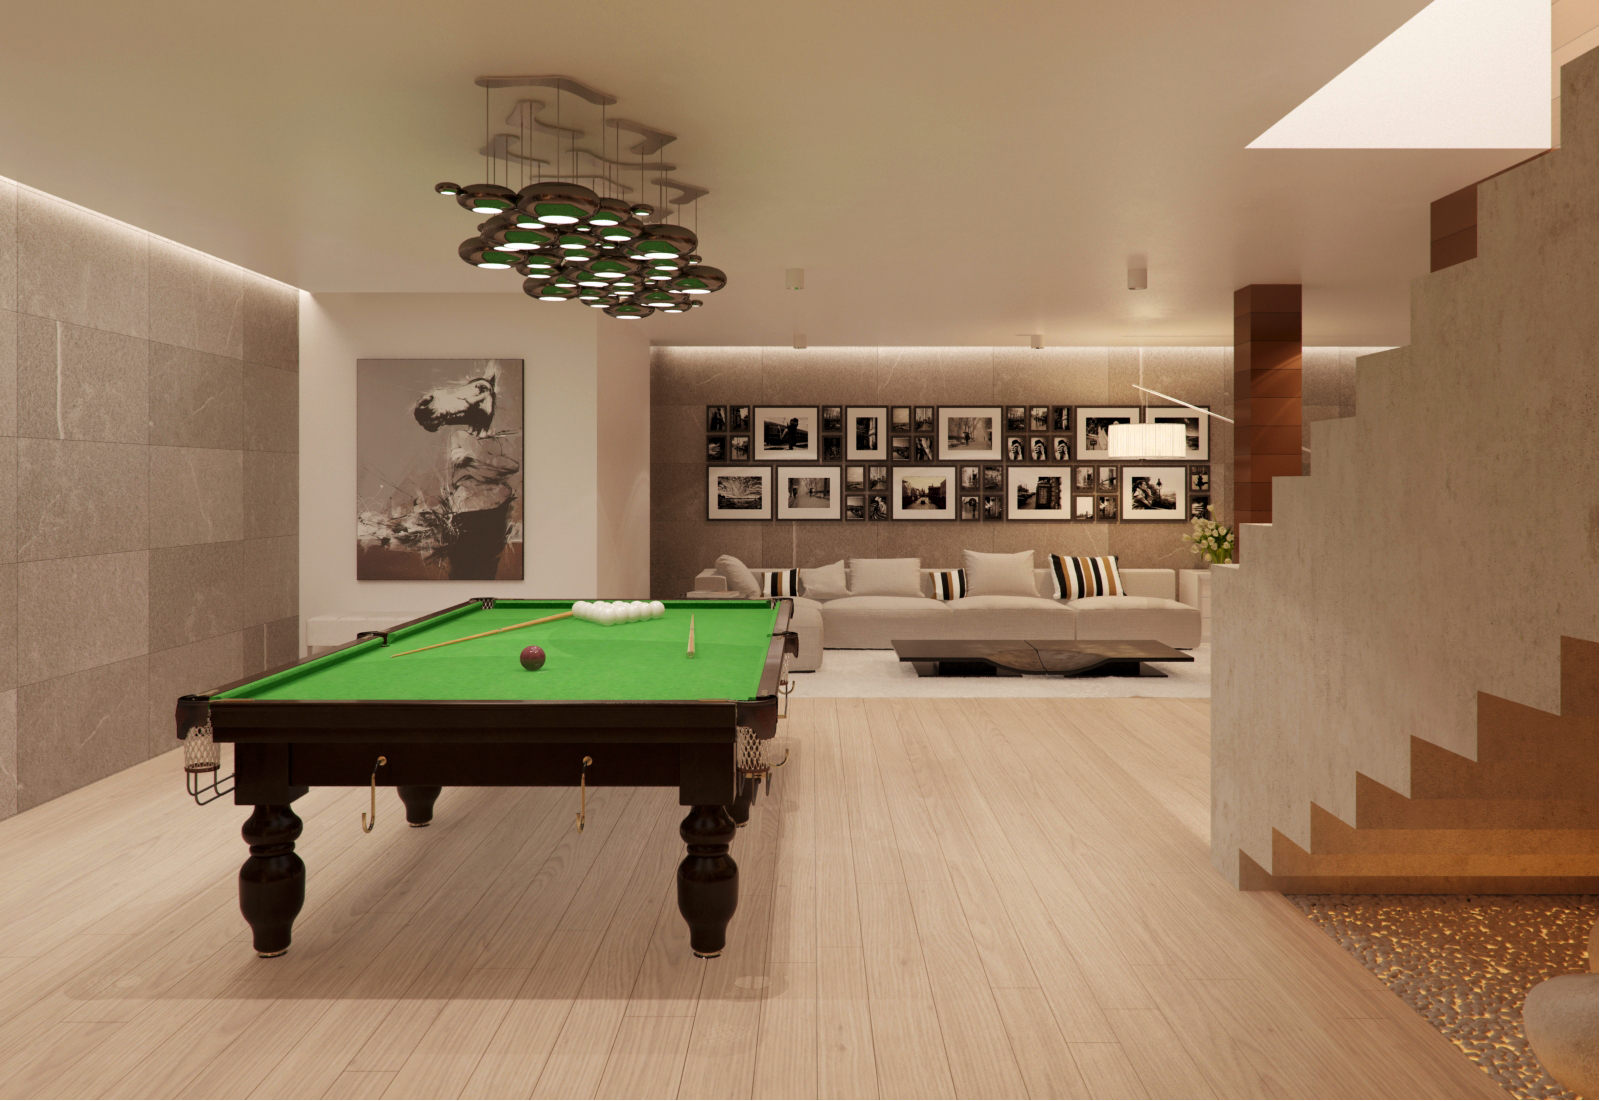 30 Trendy Billiard Room Design Ideas  Daily source for